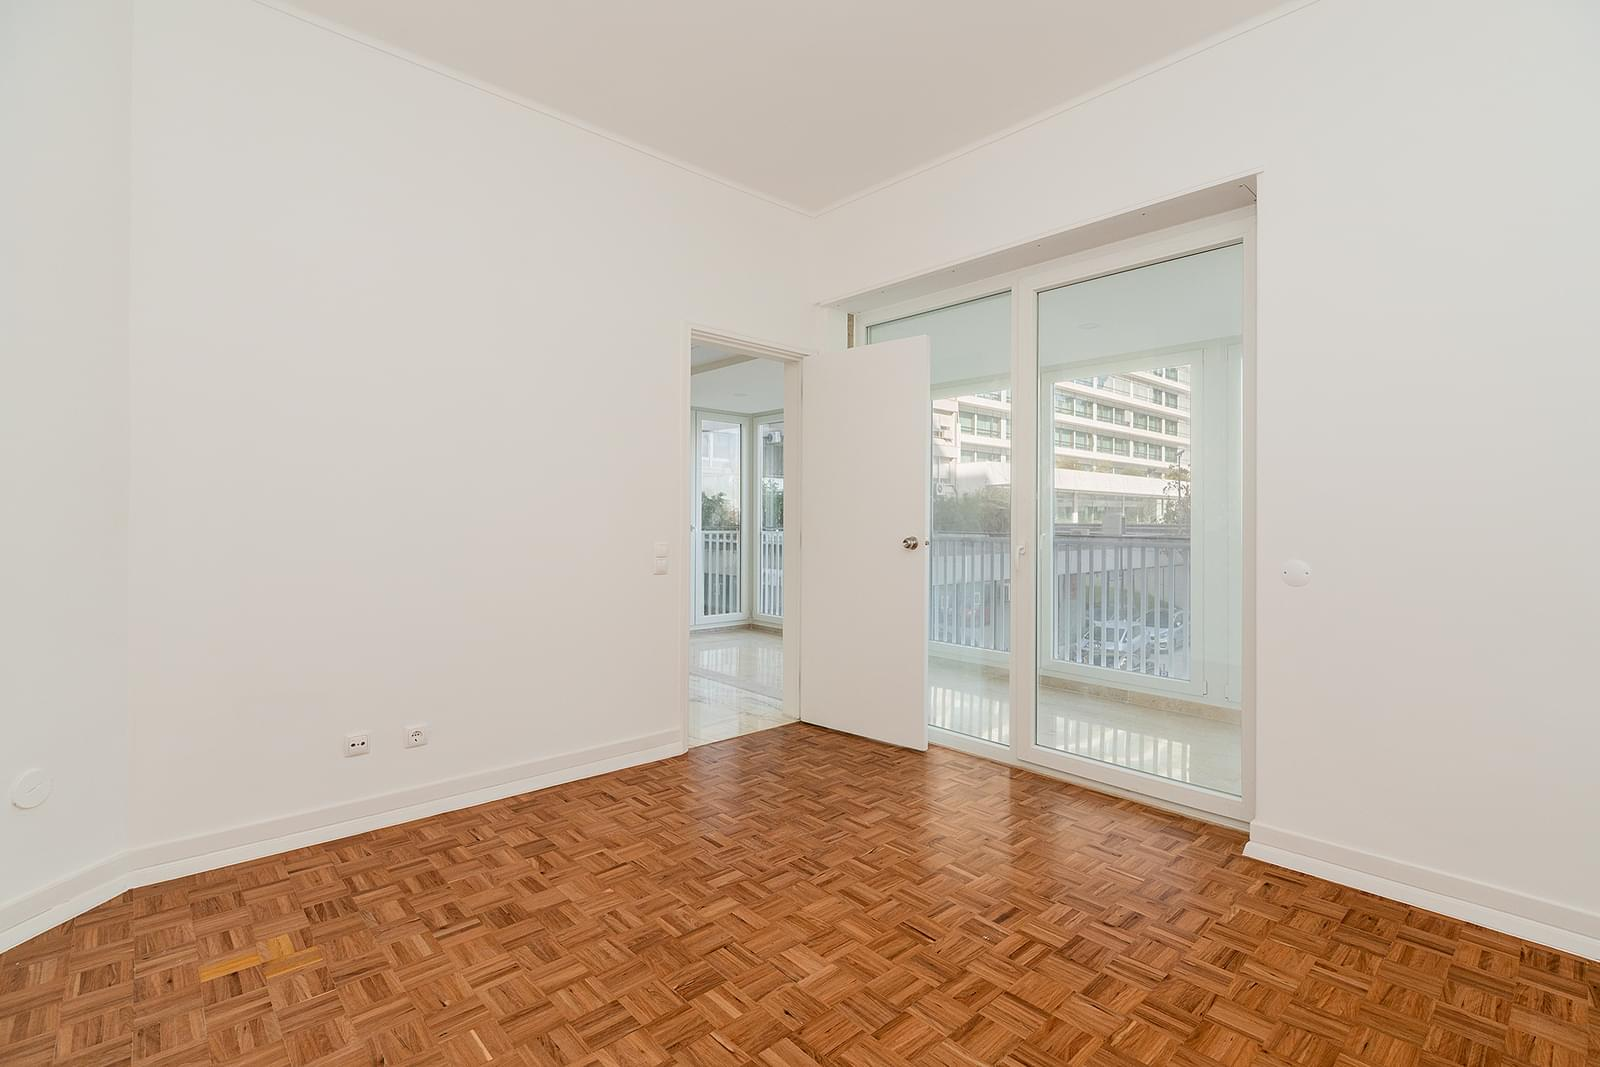 4 bedroom apartment refurbished